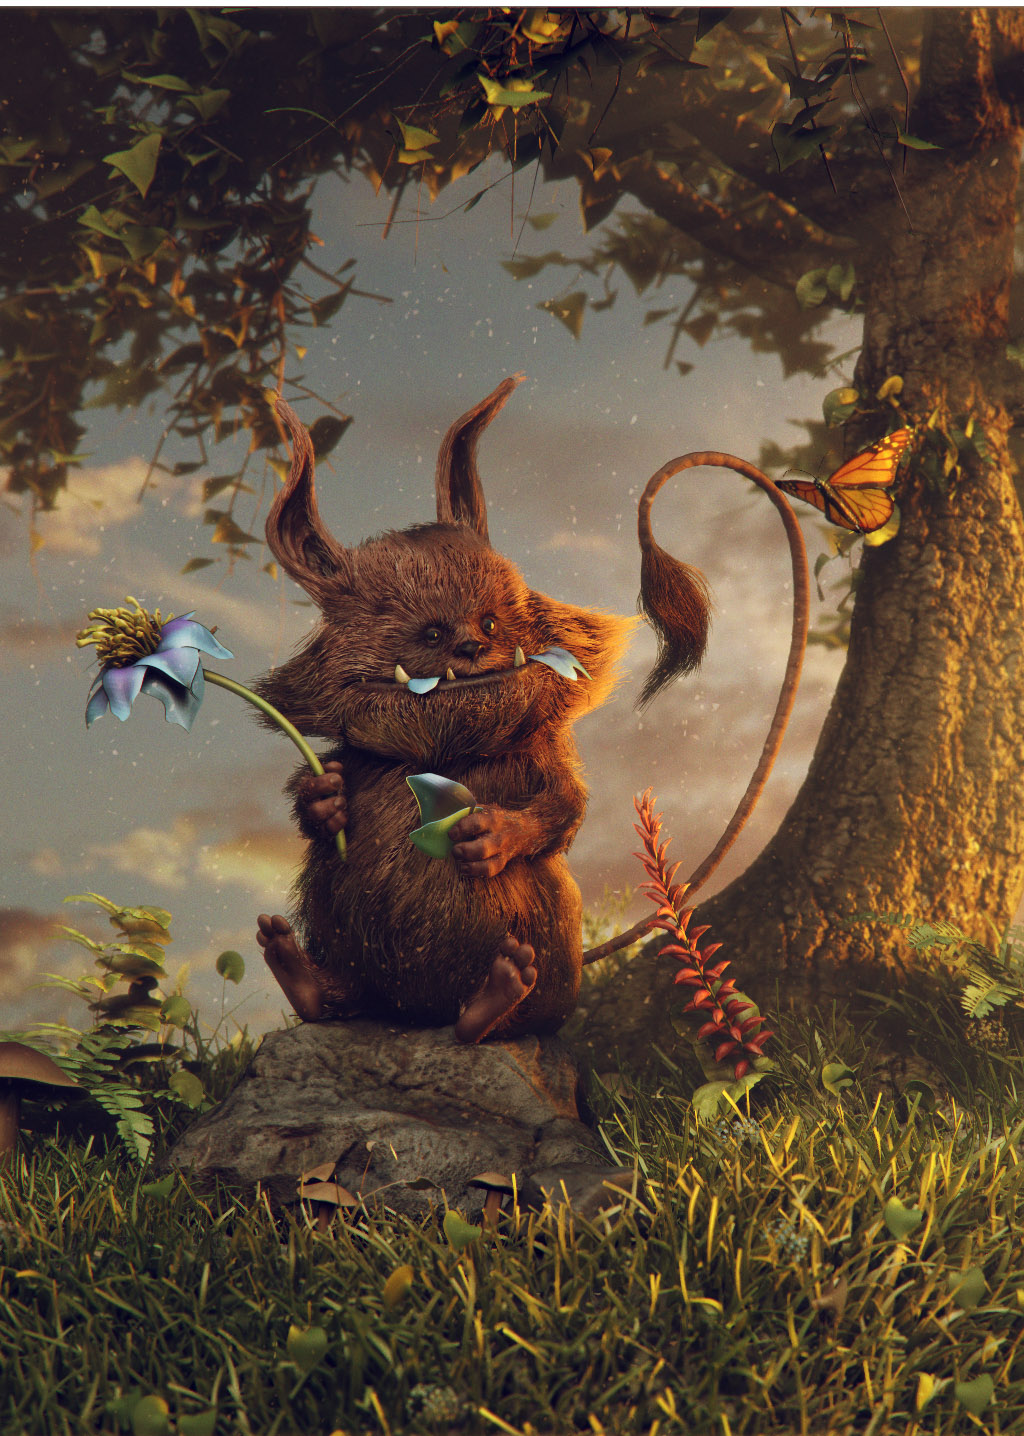 Cute Wallpapers Of All Kind Of Animals Cute And Furry Creature Daniel Bystedt S Blog